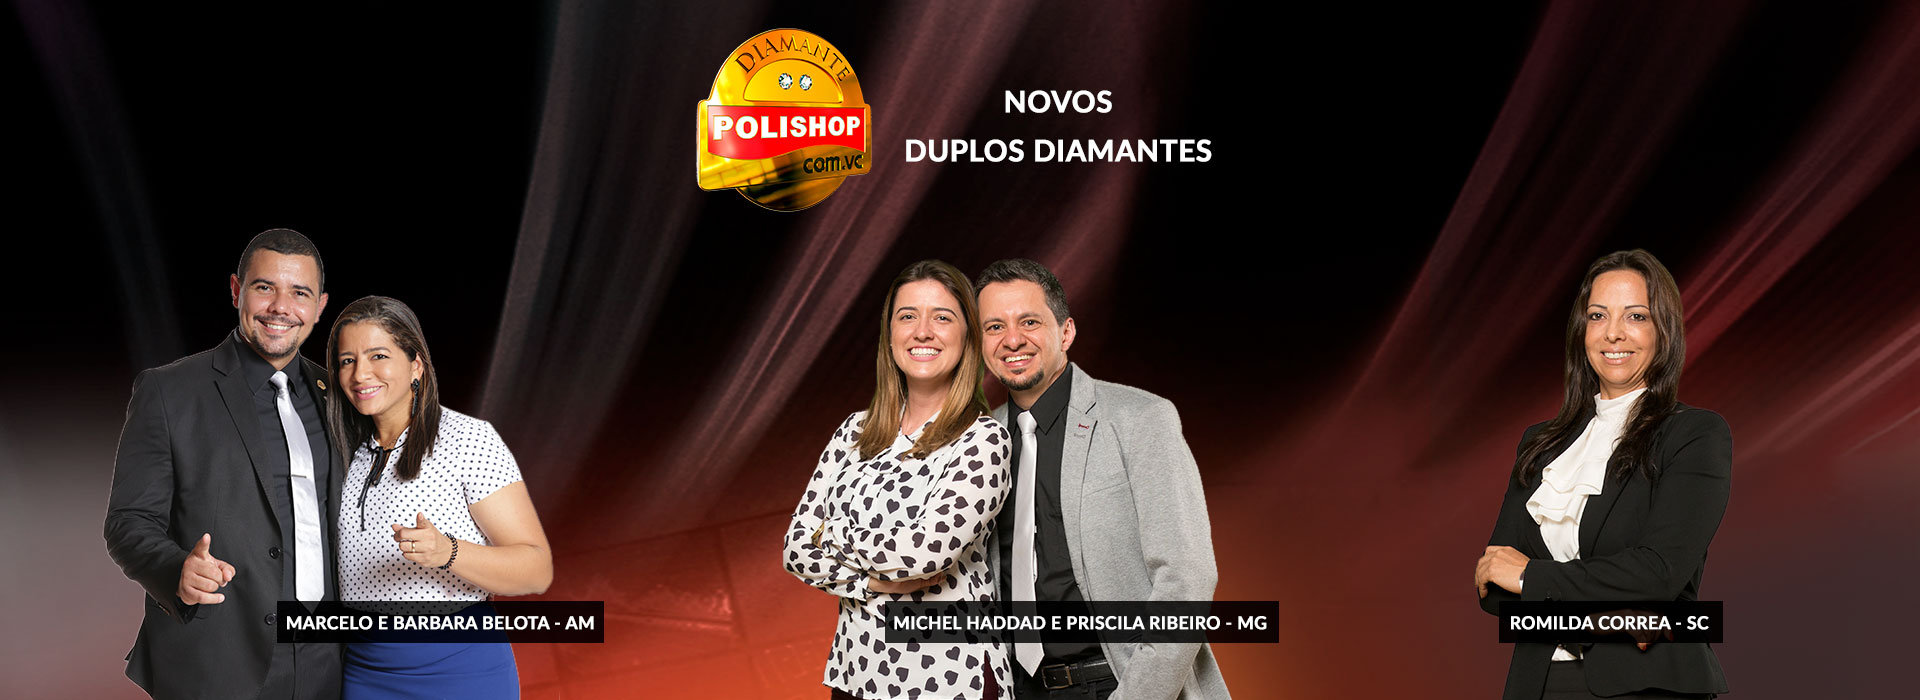 DUPLOS-DIAMANTES